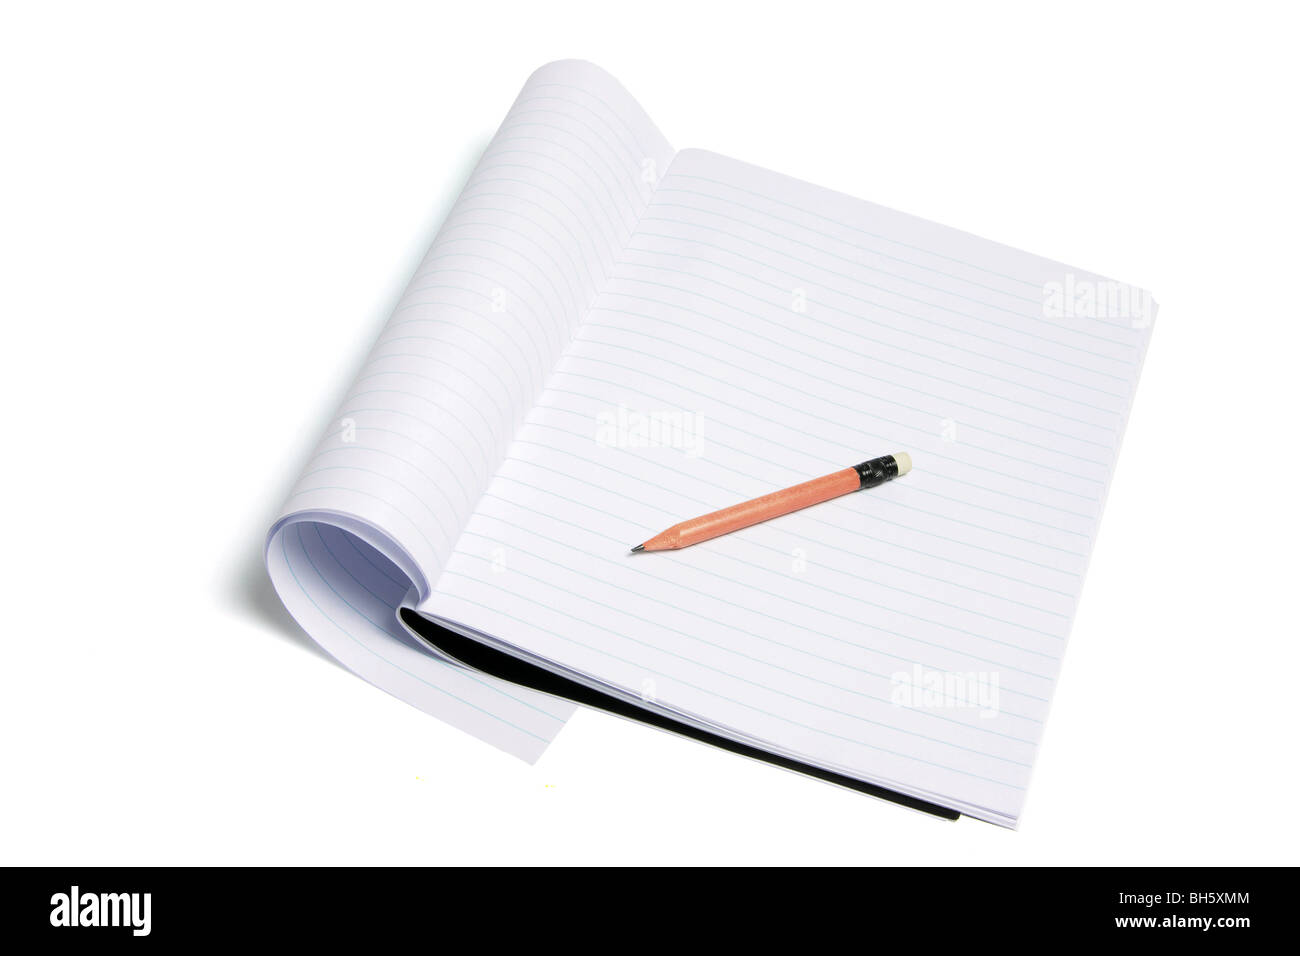 Exercise Book and Pencil - Stock Image